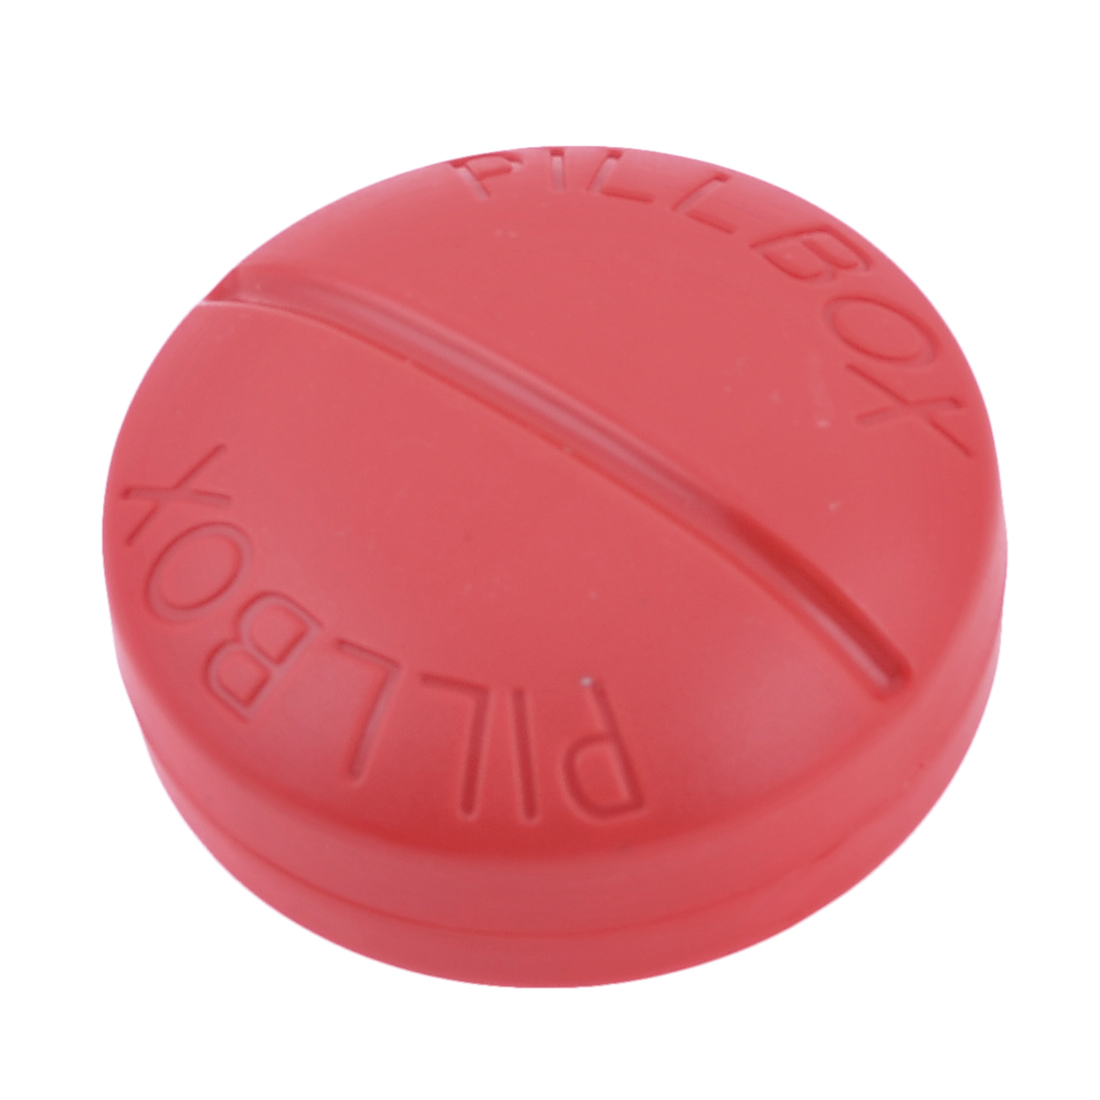 Home Travel Plastic Red Round 4 Compartments Medicine Storage Holder Pill Box